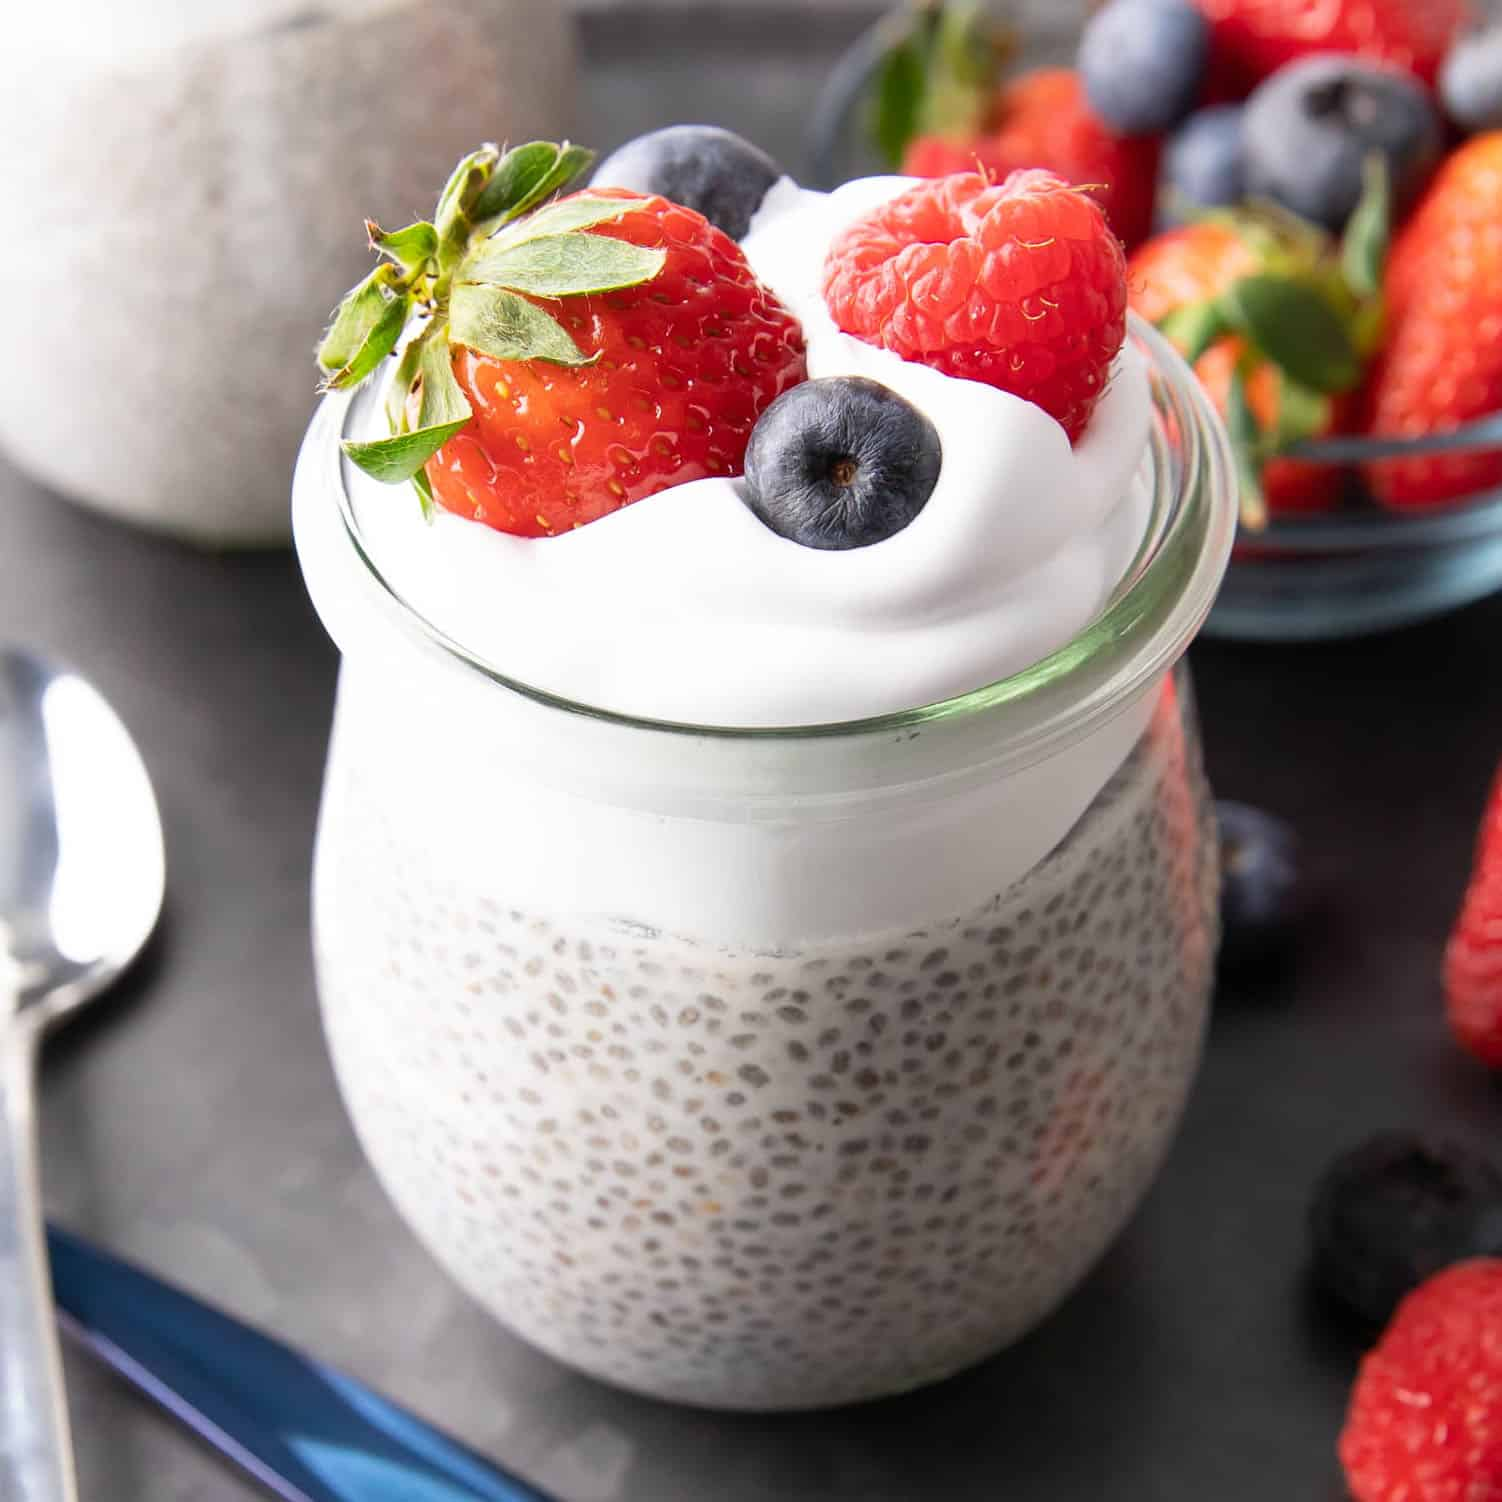 Chia Pudding: this 3 ingredient chia pudding recipe is healthy, rich & creamy, and delicious! Learn how to make chia pudding the EASY way. Vegan, Gluten Free, Dairy Free. #ChiaPudding #ChiaSeedPudding #ChiaSeed #Vegan | Recipe at BeamingBaker.com